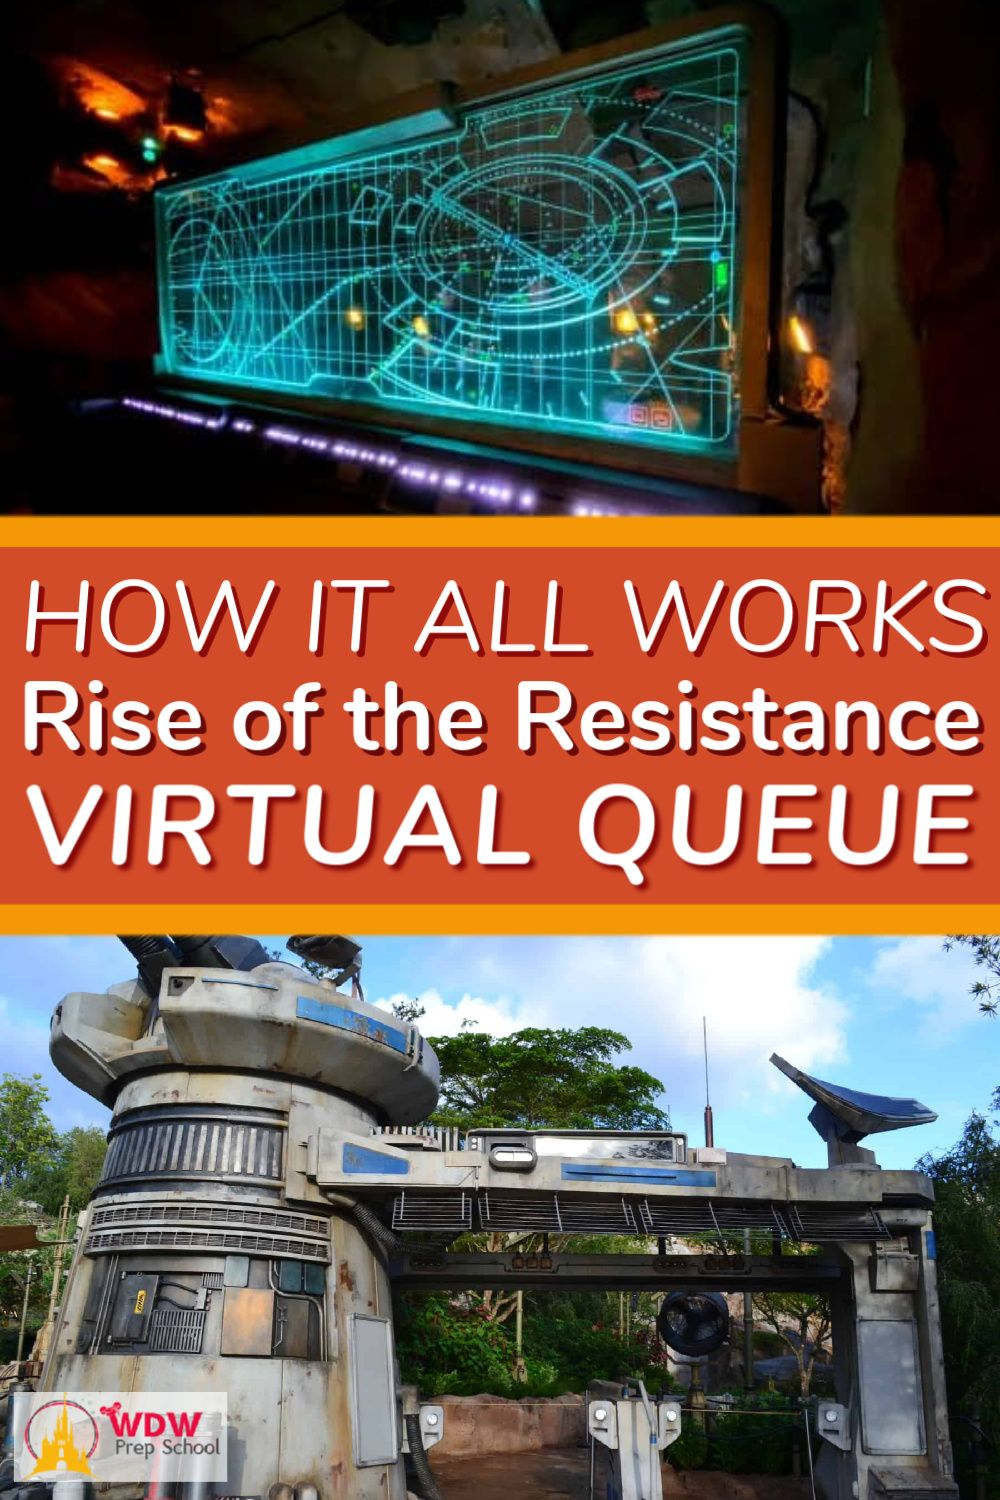 445608cb0aa4af0b08a15b7fcd96f3f6 - How To Get In Queue For Rise Of The Resistance